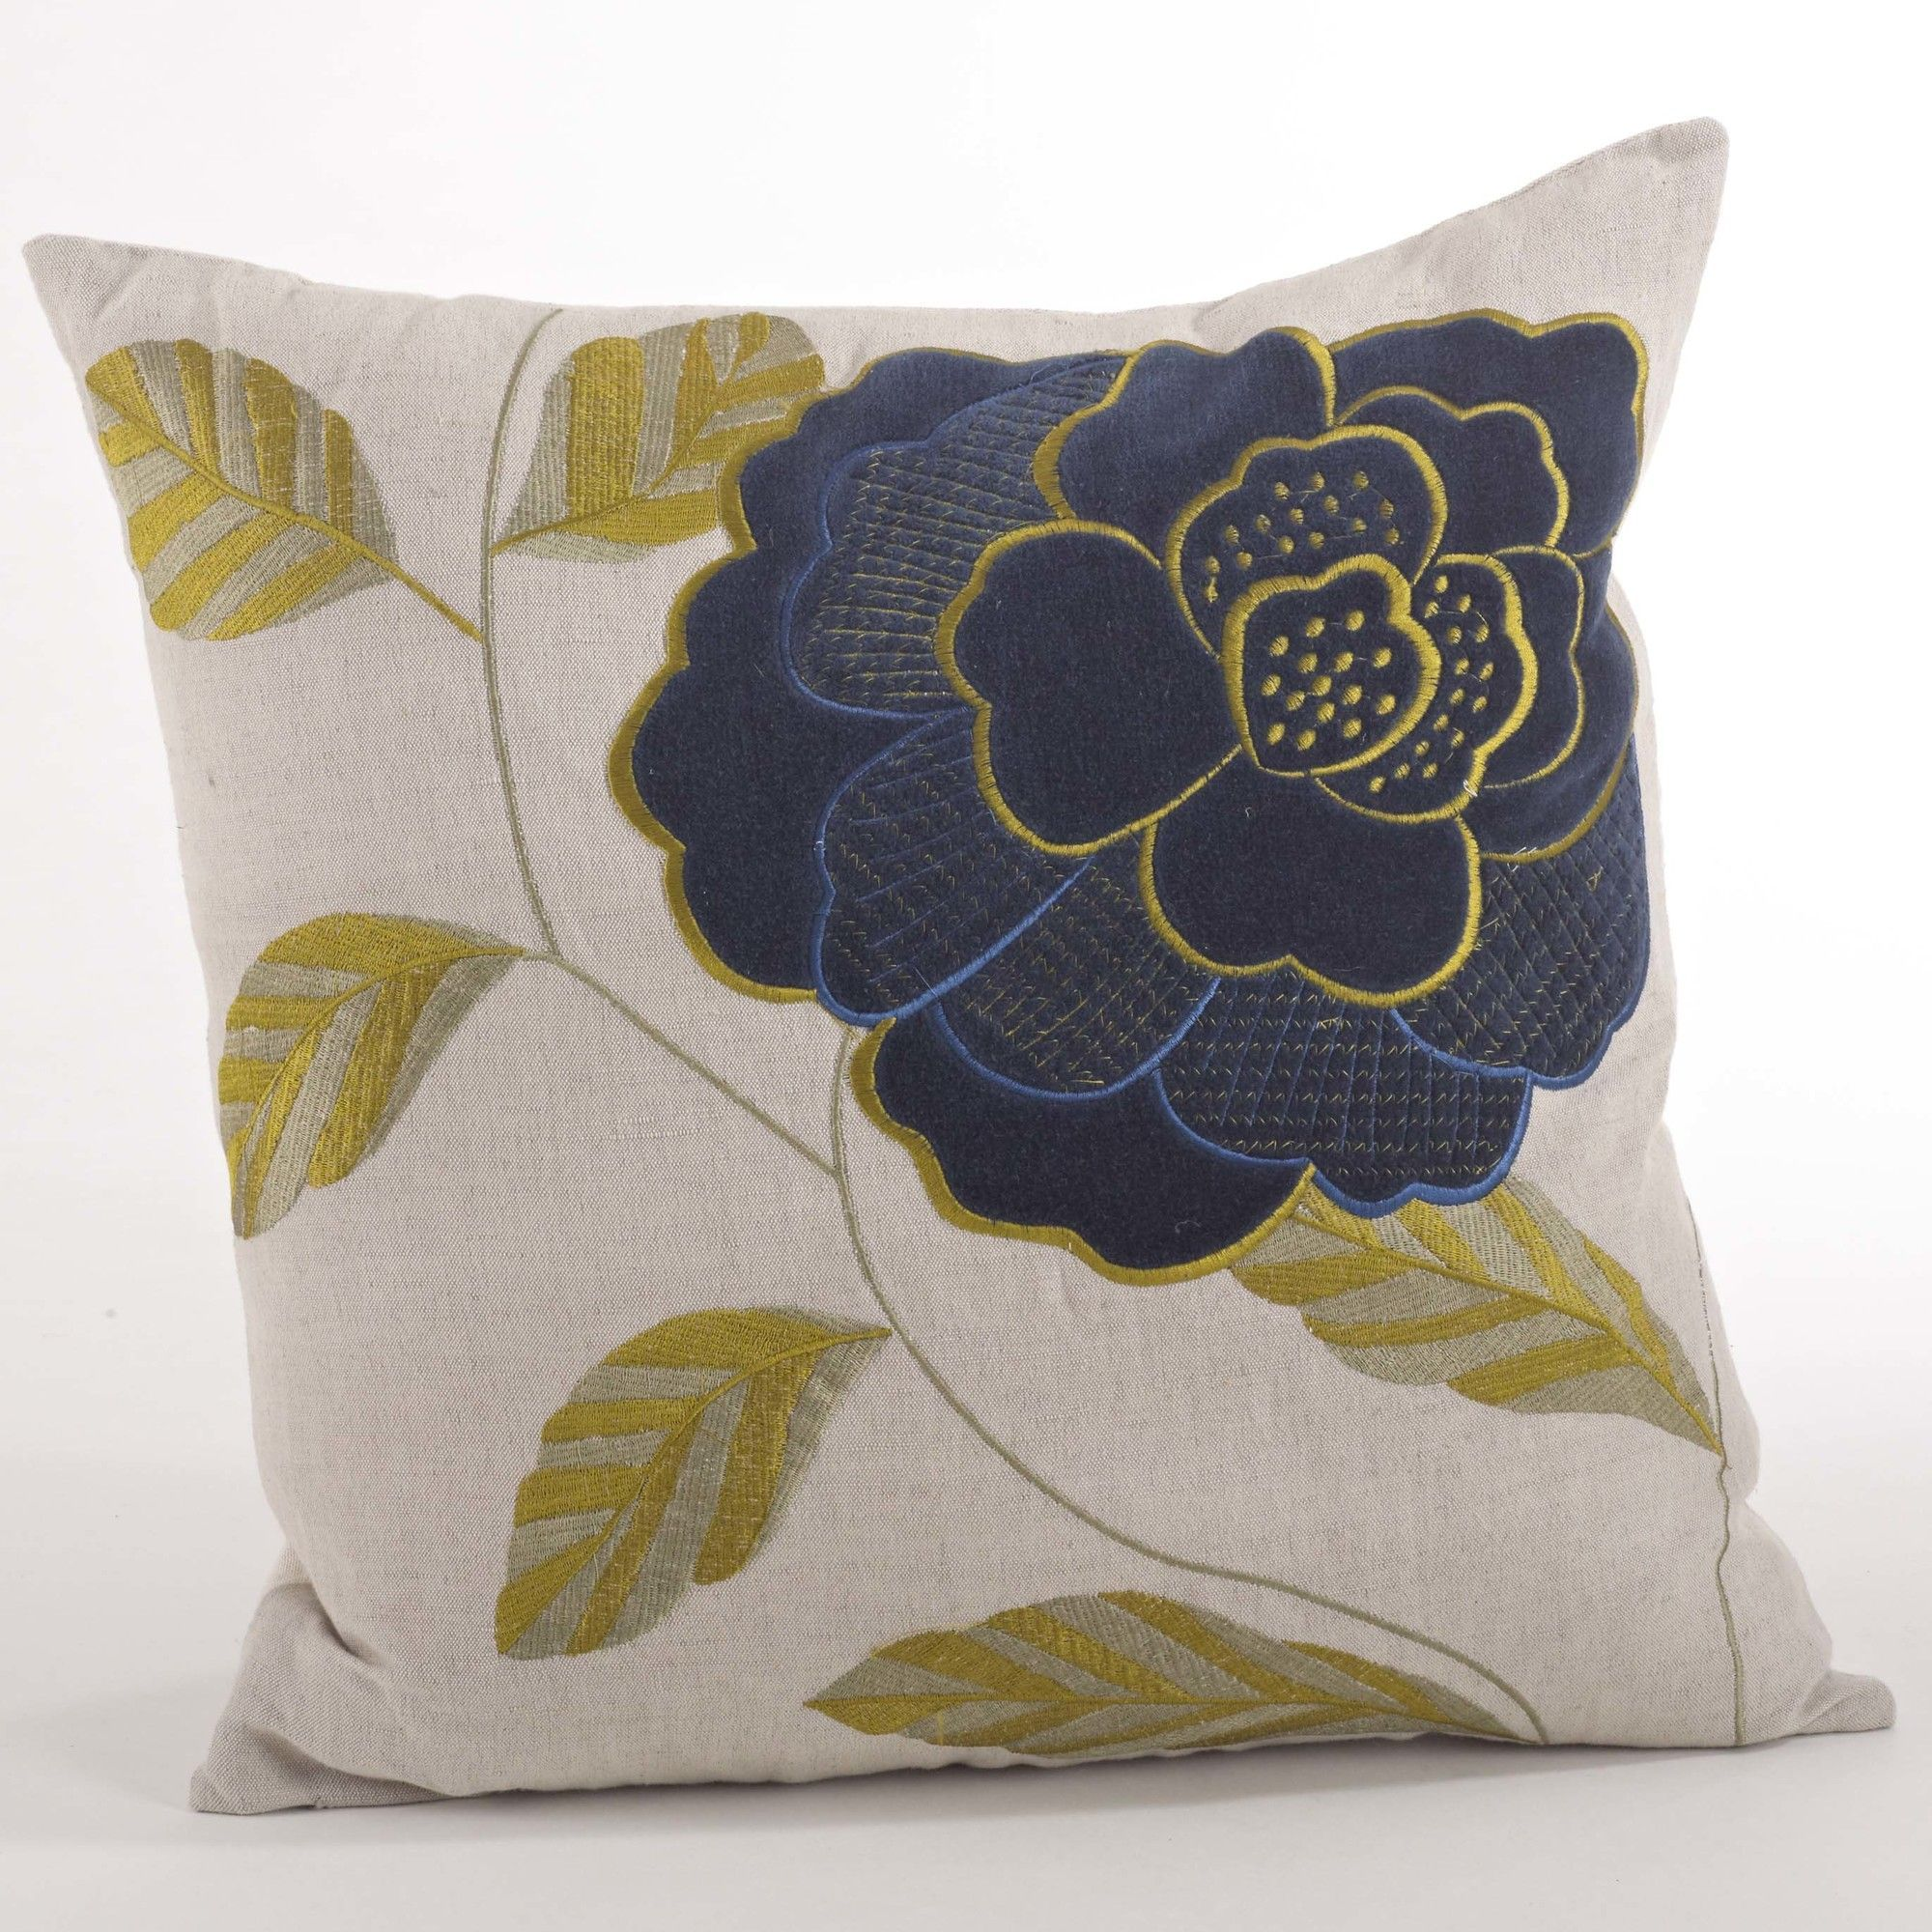 Imani Embroidered Flower Design Throw Pillow